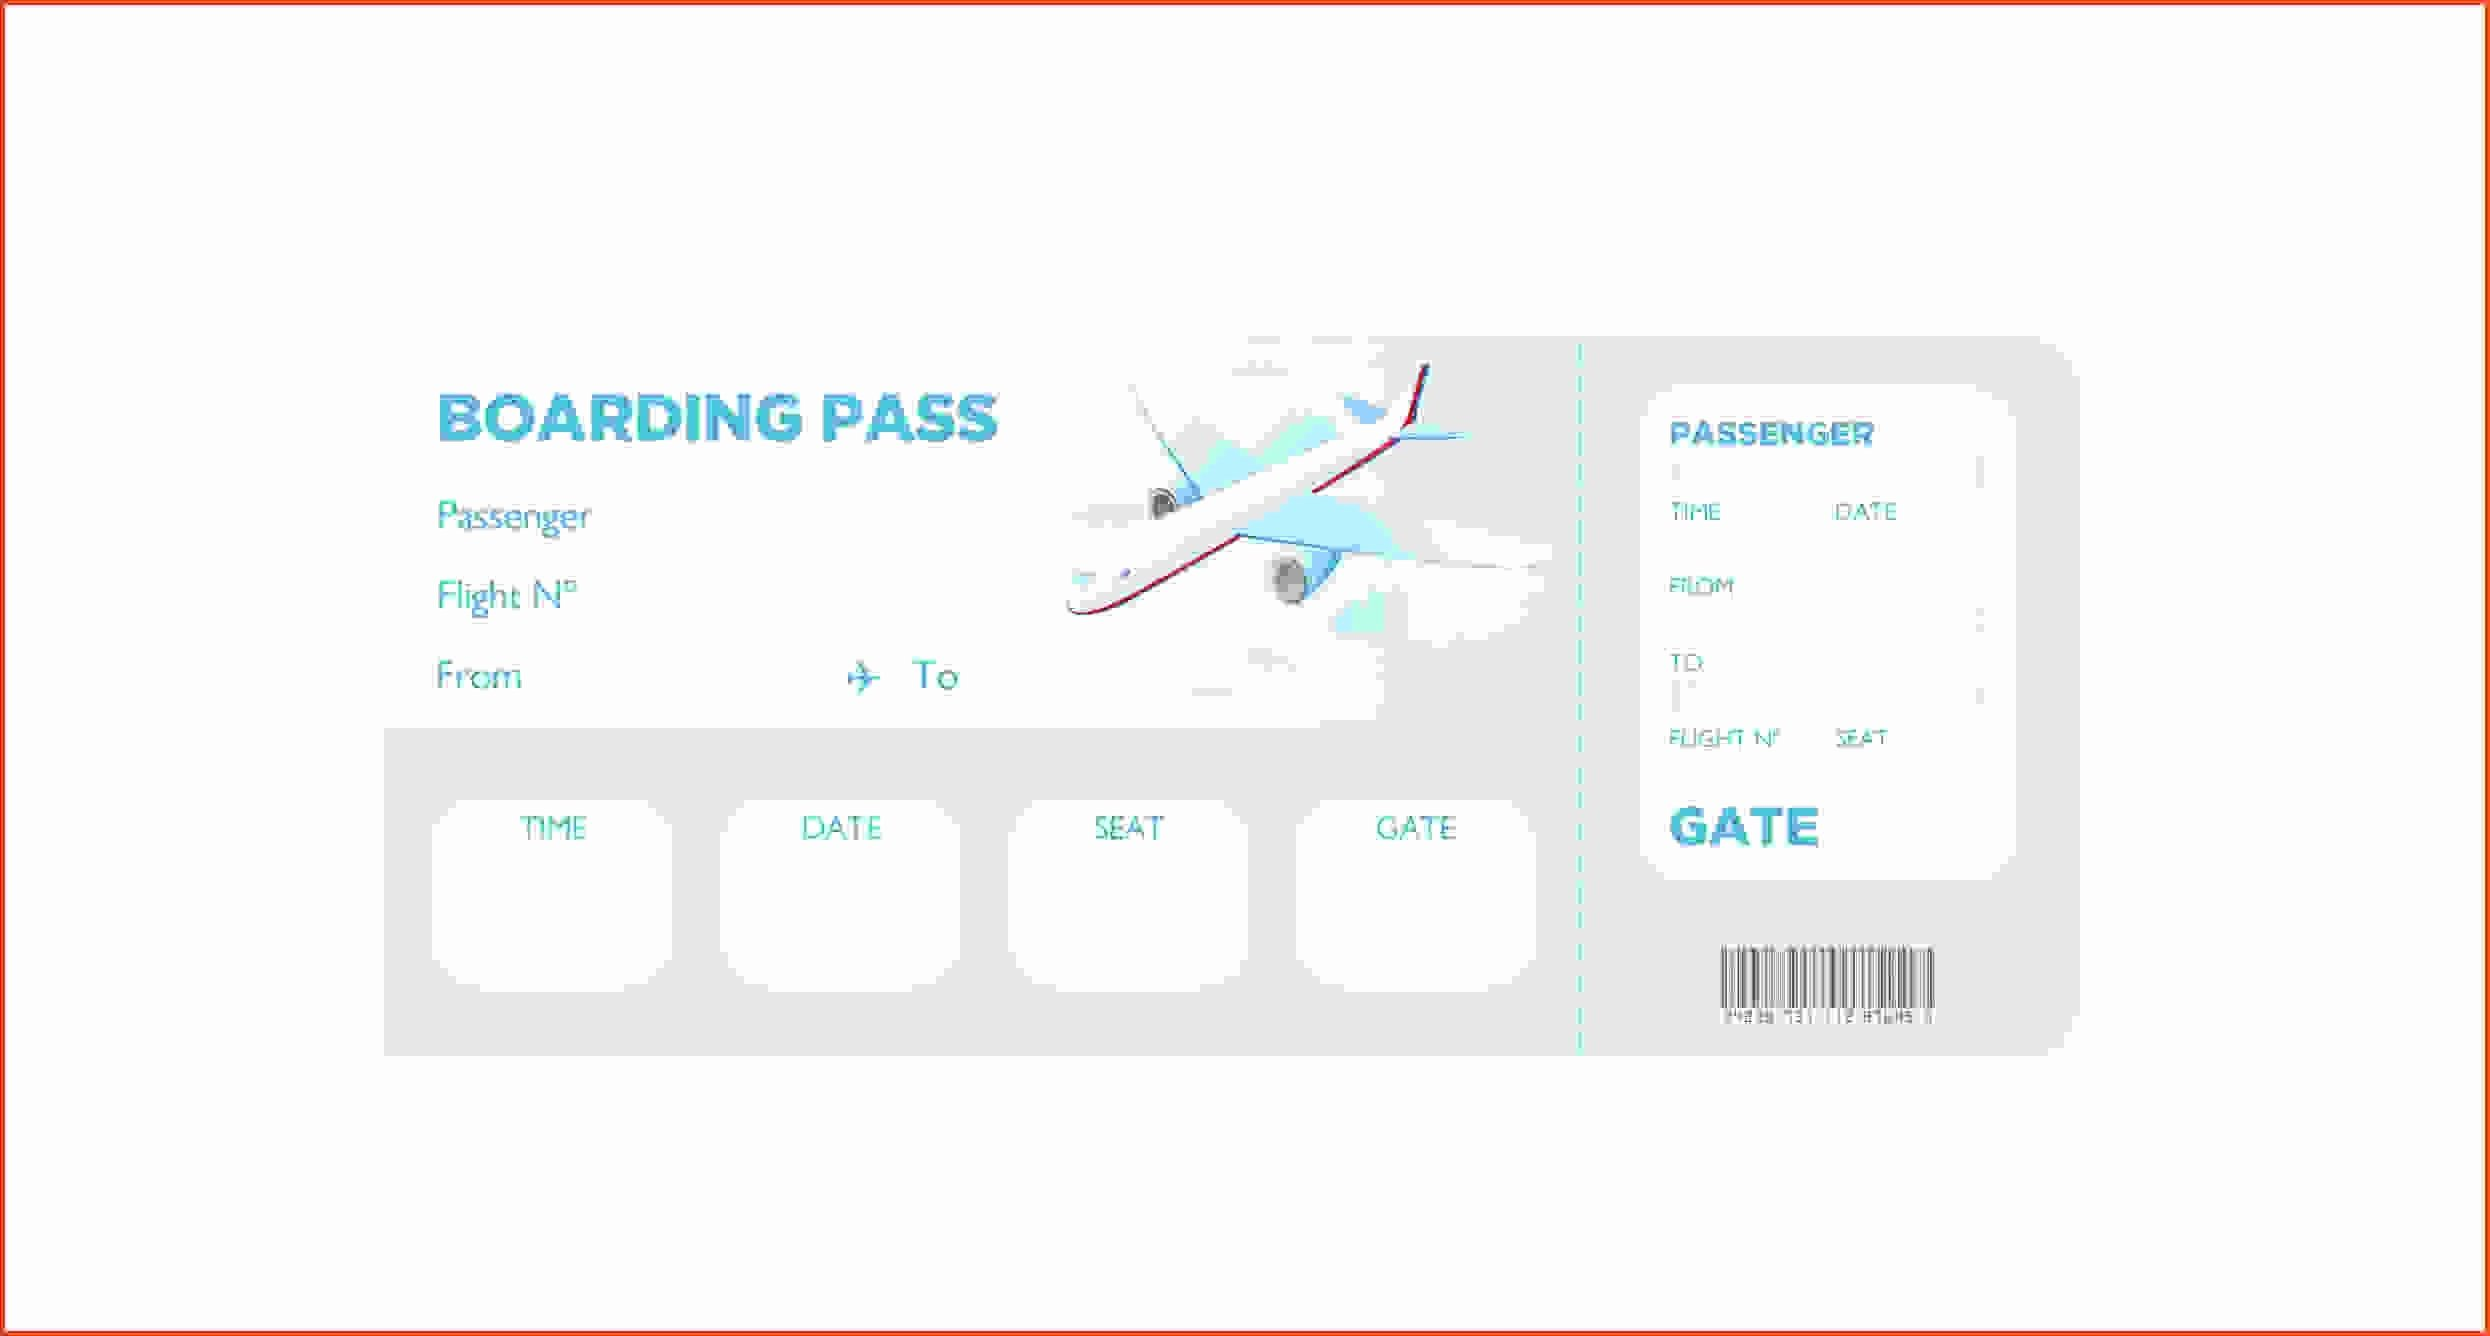 Free Boarding Pass Template Elegant Boarding Pass Template Beepmunk